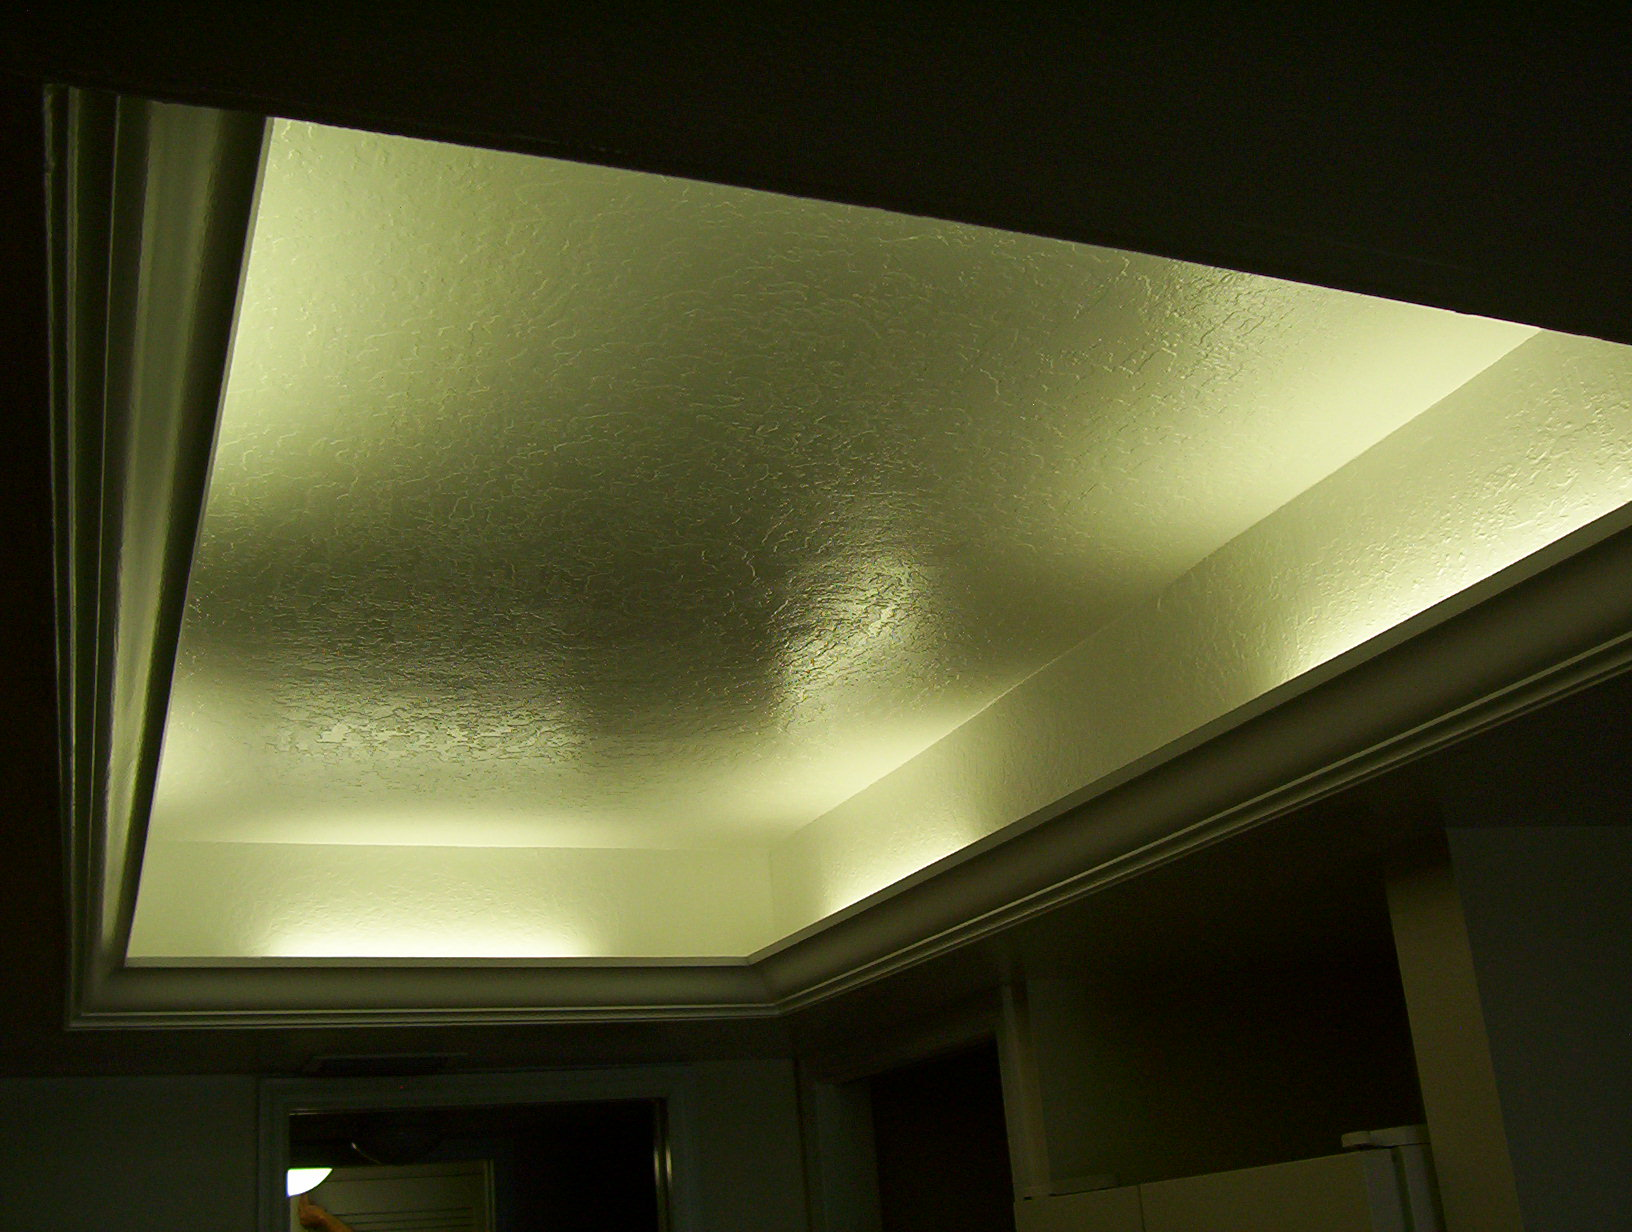 Kitchen Drop Ceiling Lighting What To Do With My Old Kitchen Drop Ceiling Lighting Kitchen Remodel